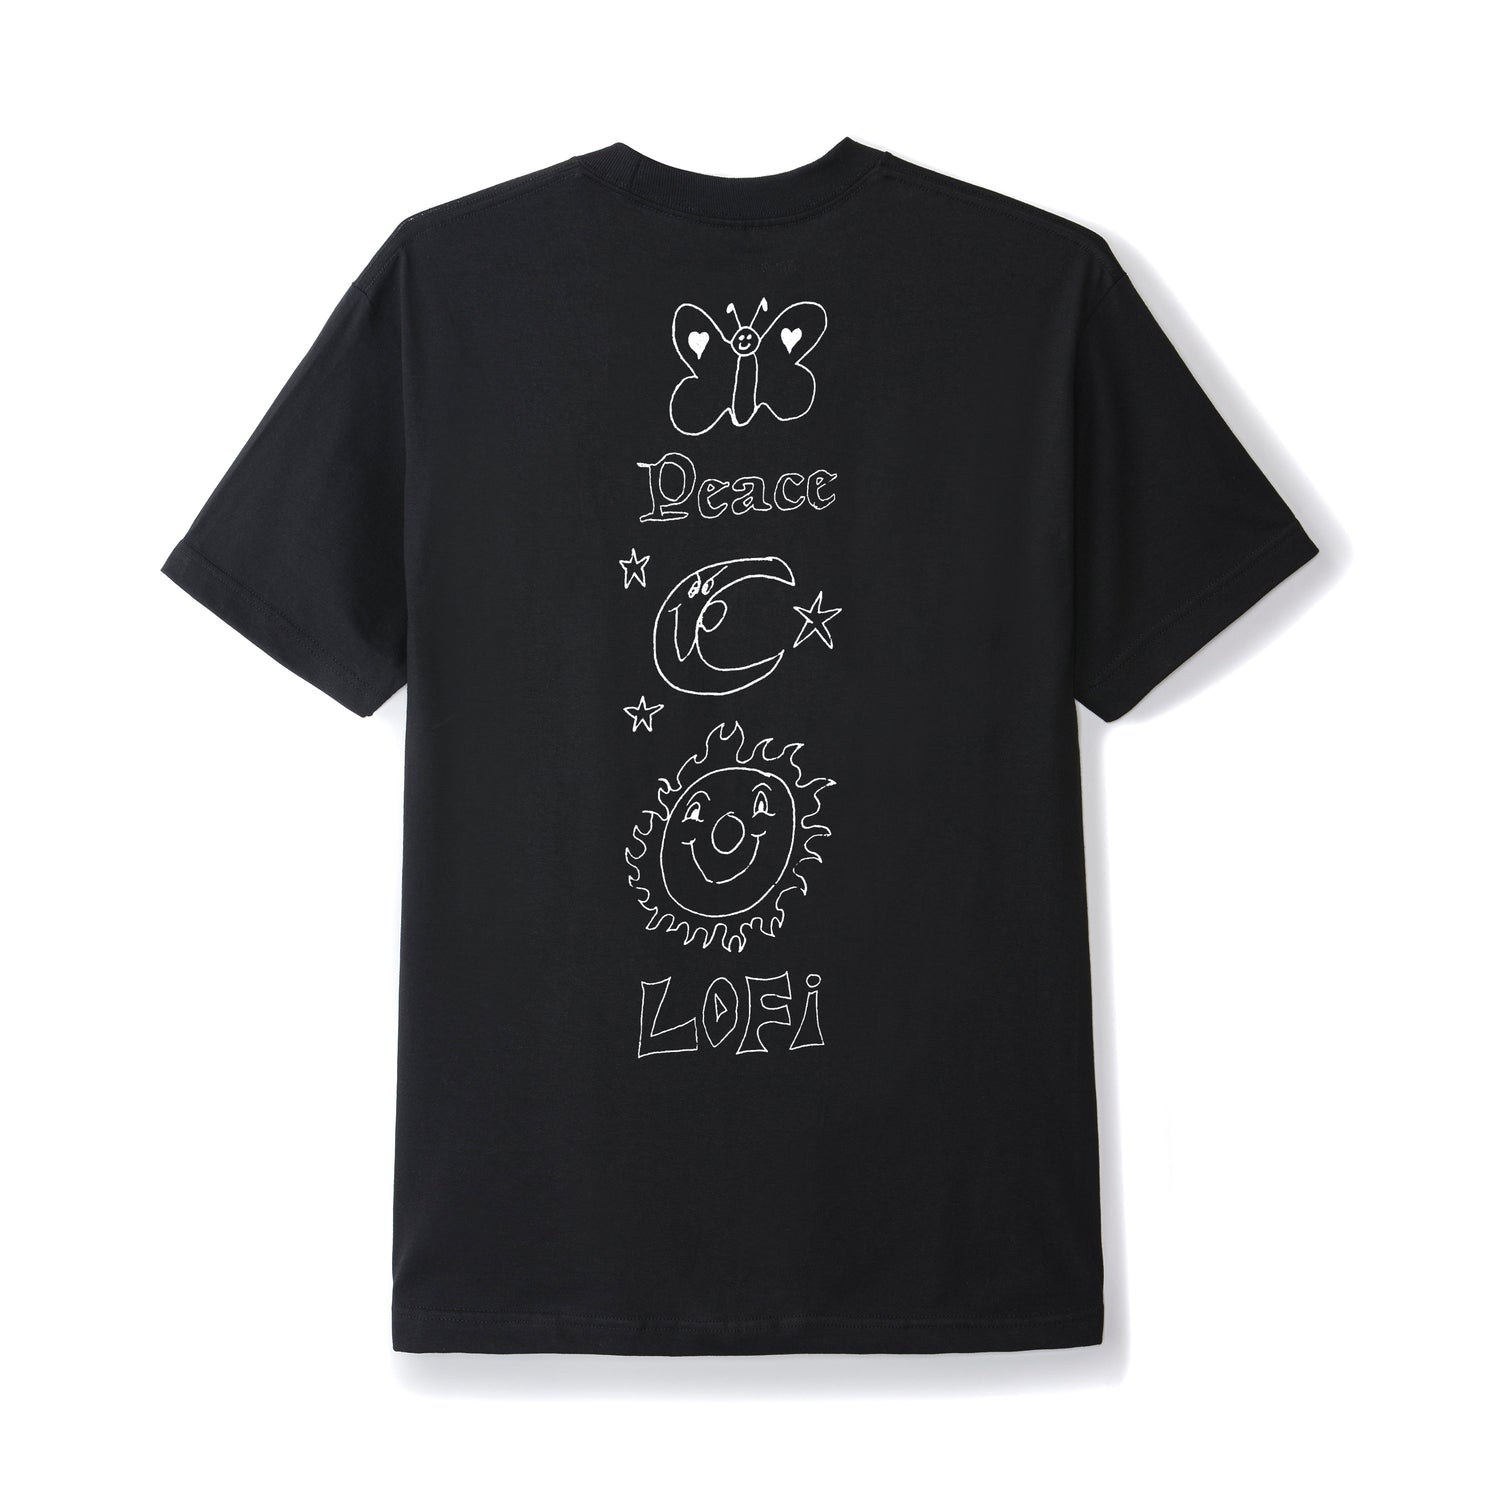 Lo-Fi / Stan Ray Peace Tee, Black